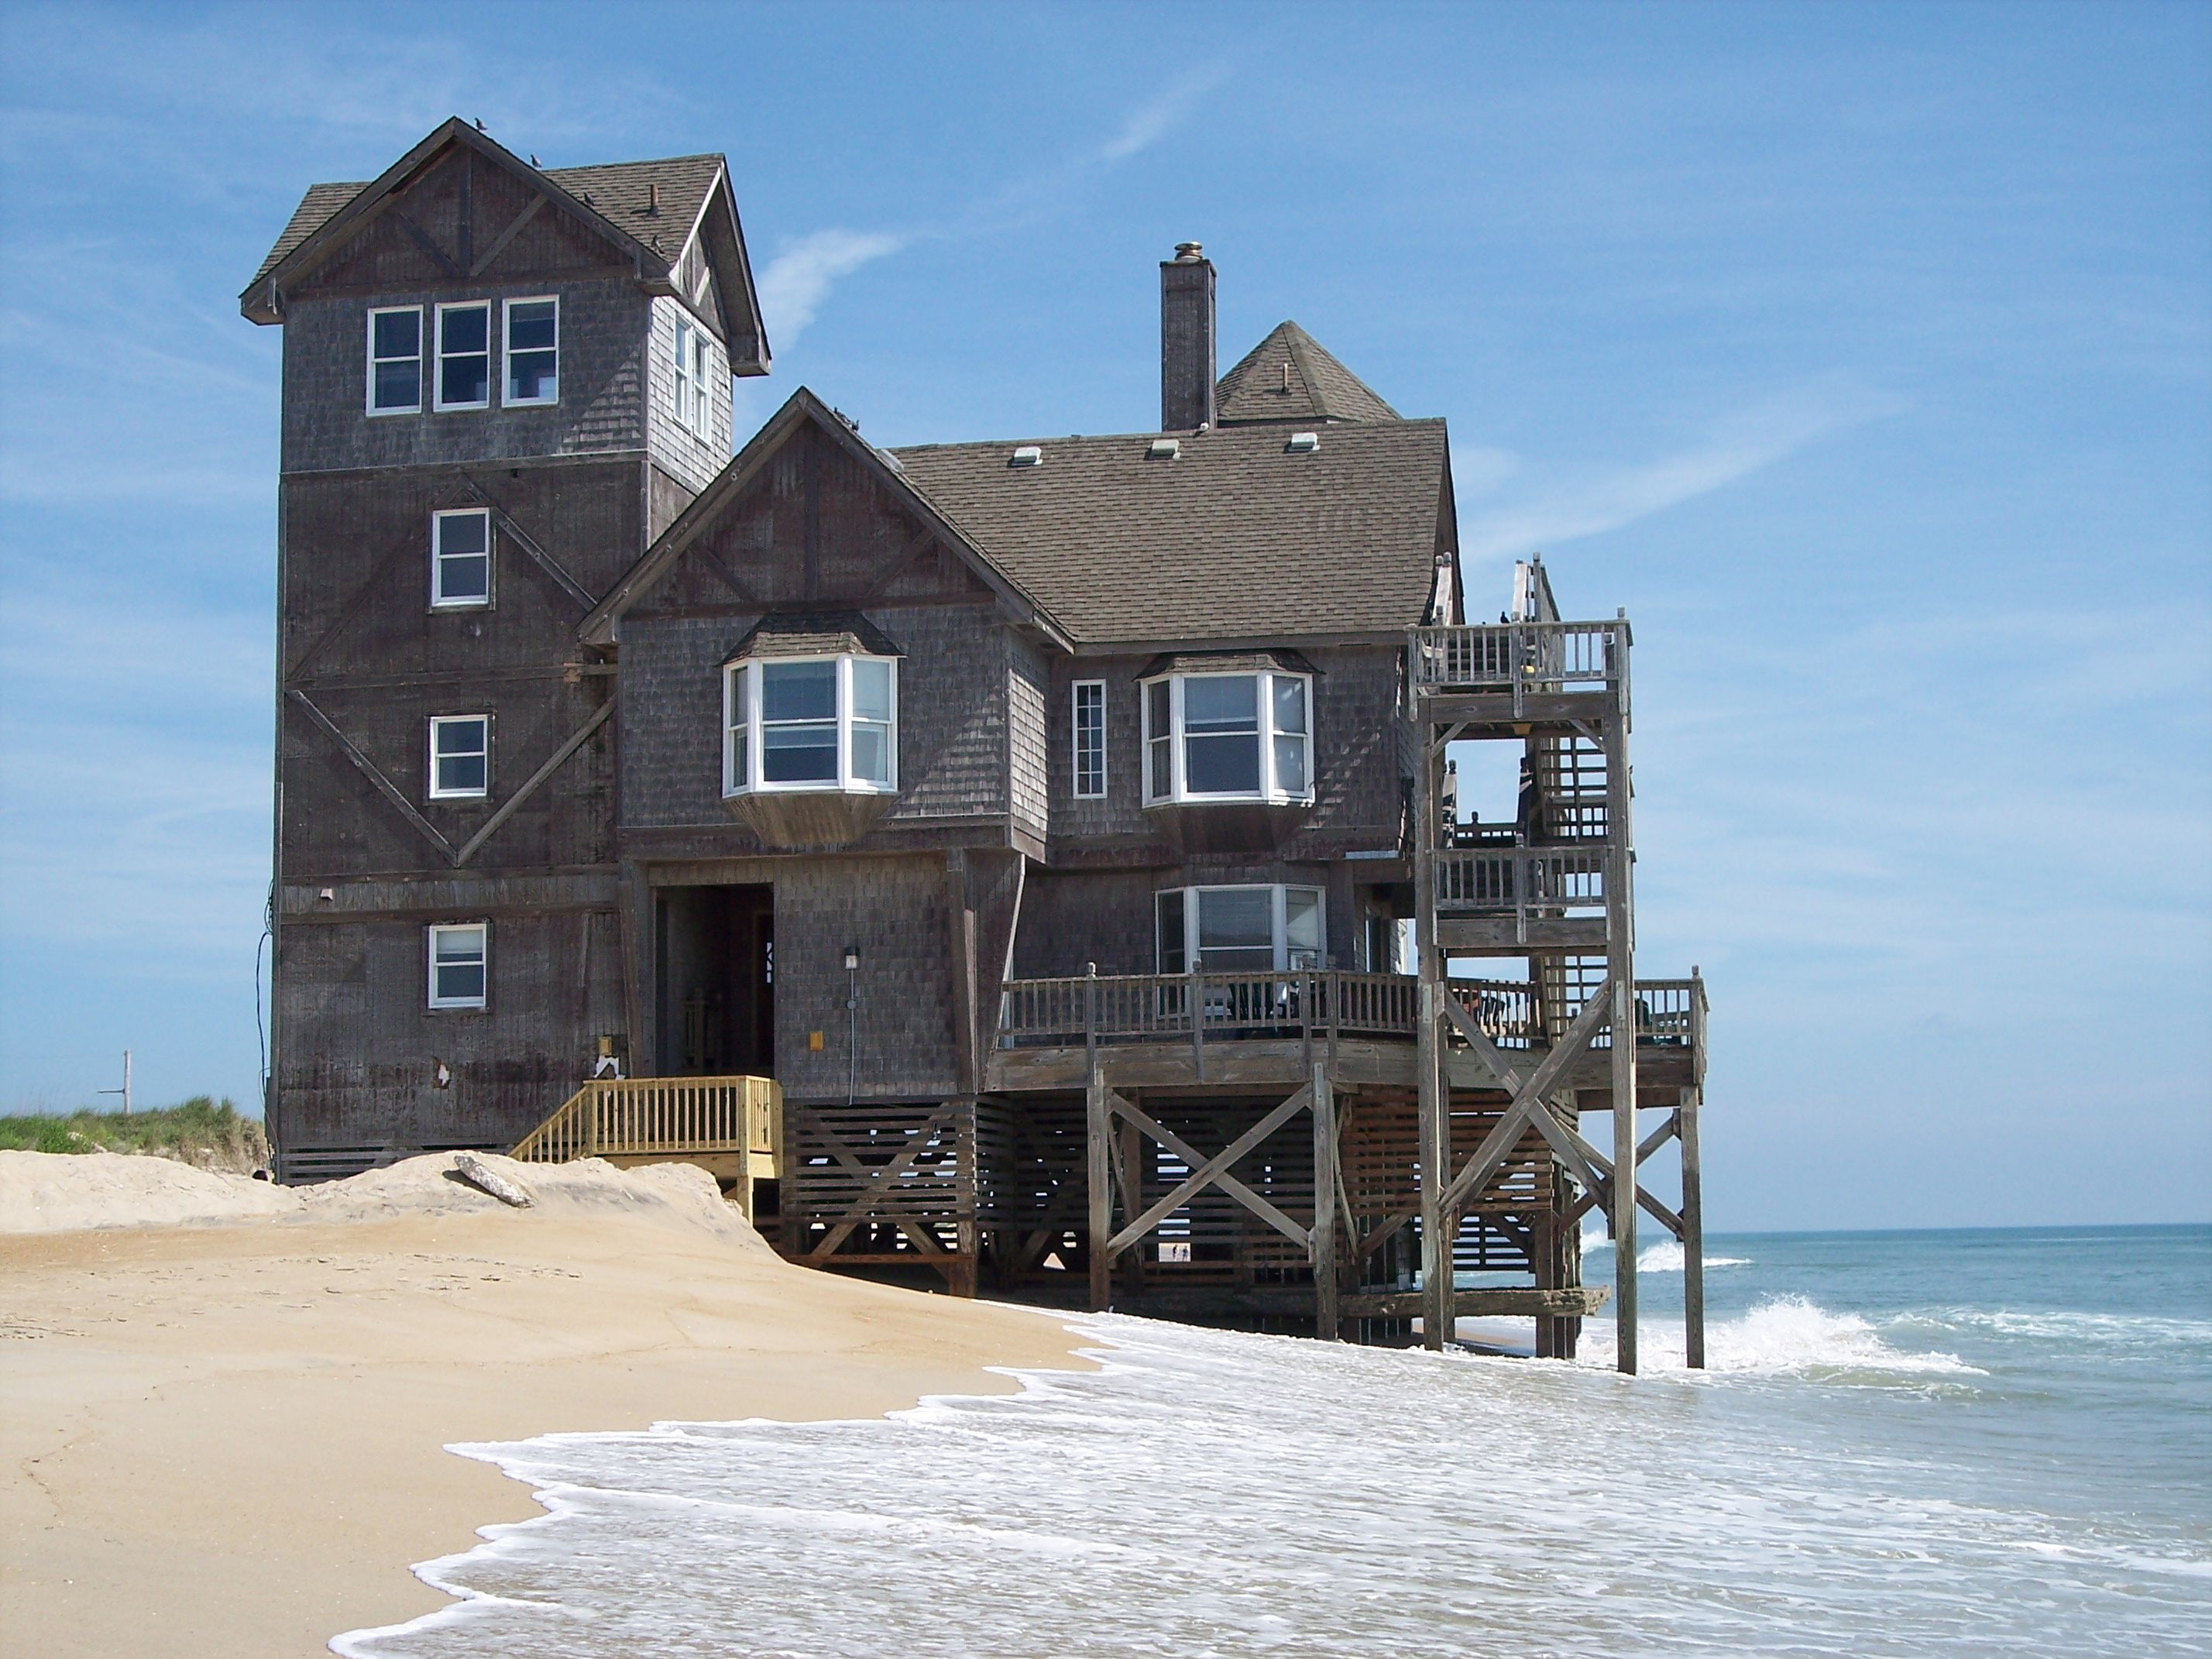 The Inn At Rodanthe Nights In Nc Image